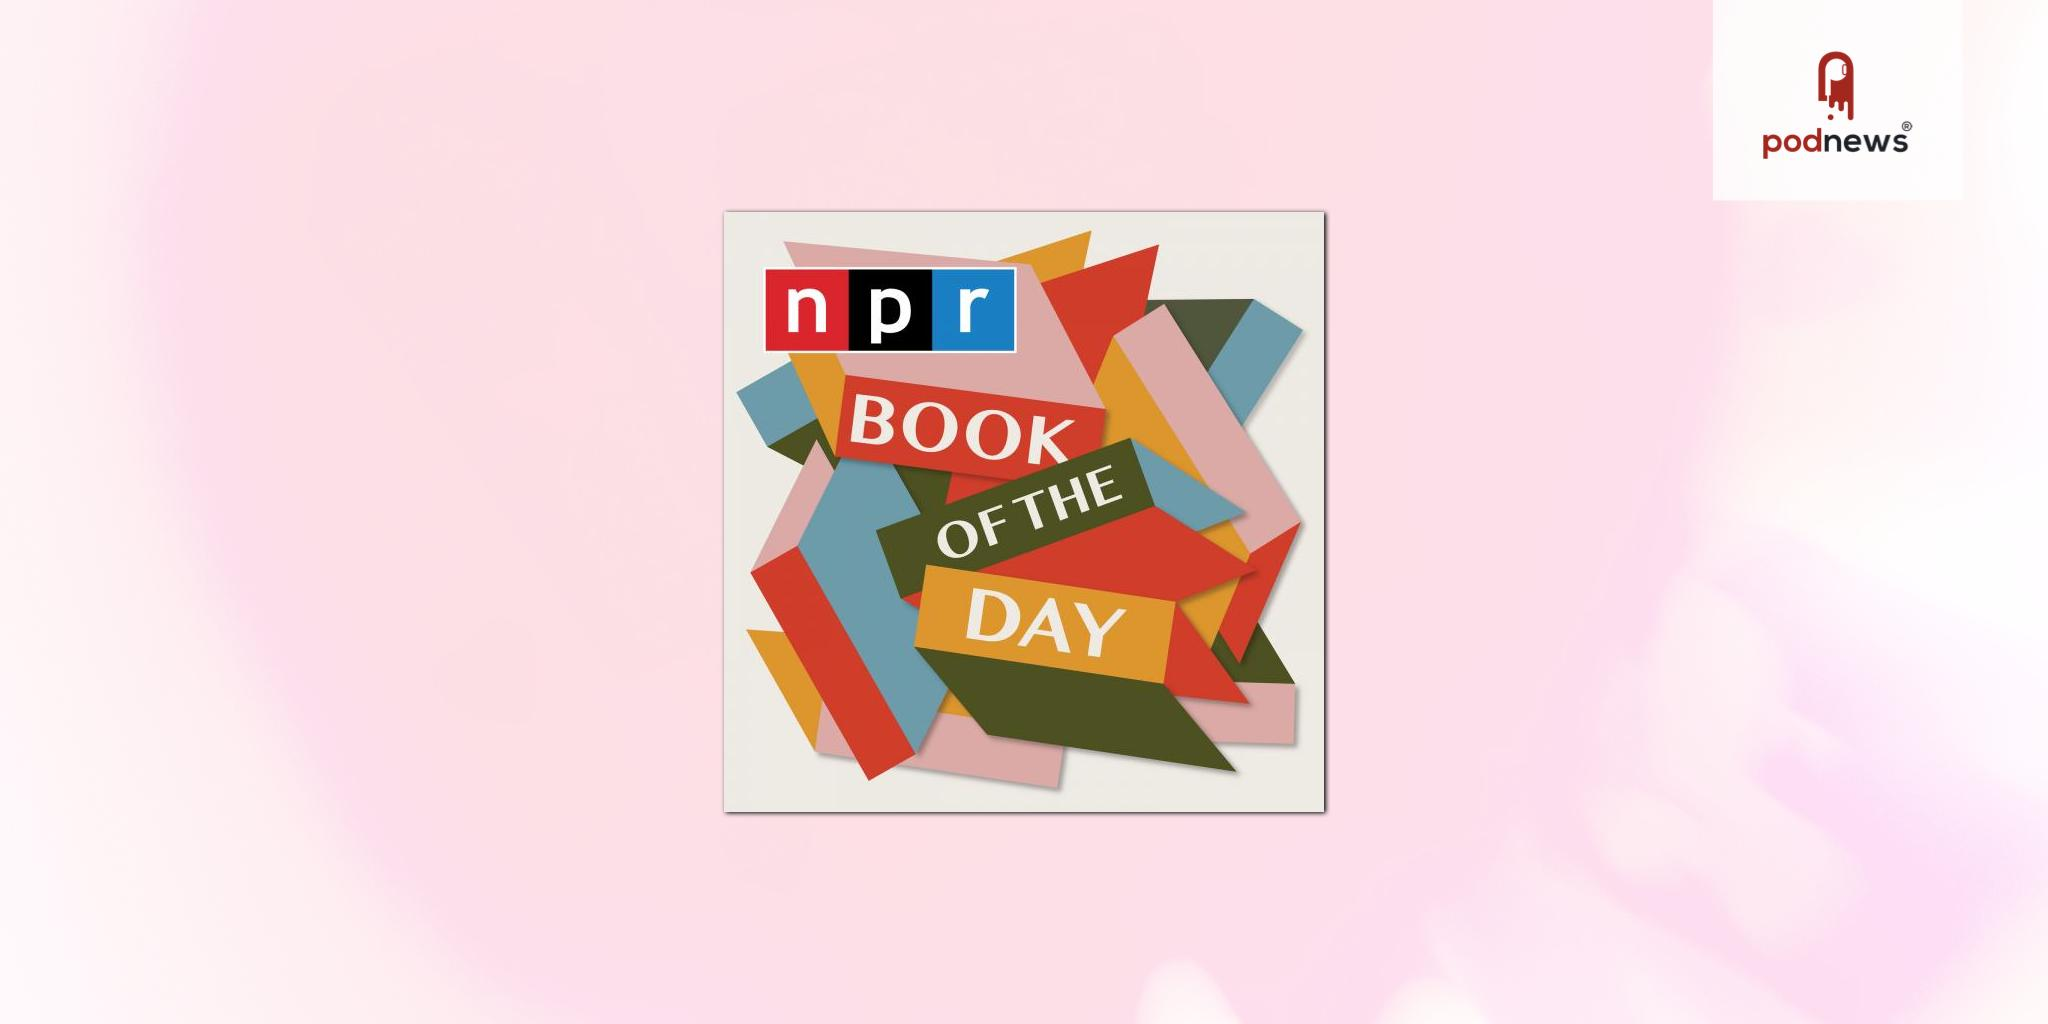 'NPR's Book of the Day' Podcast Debuts Today